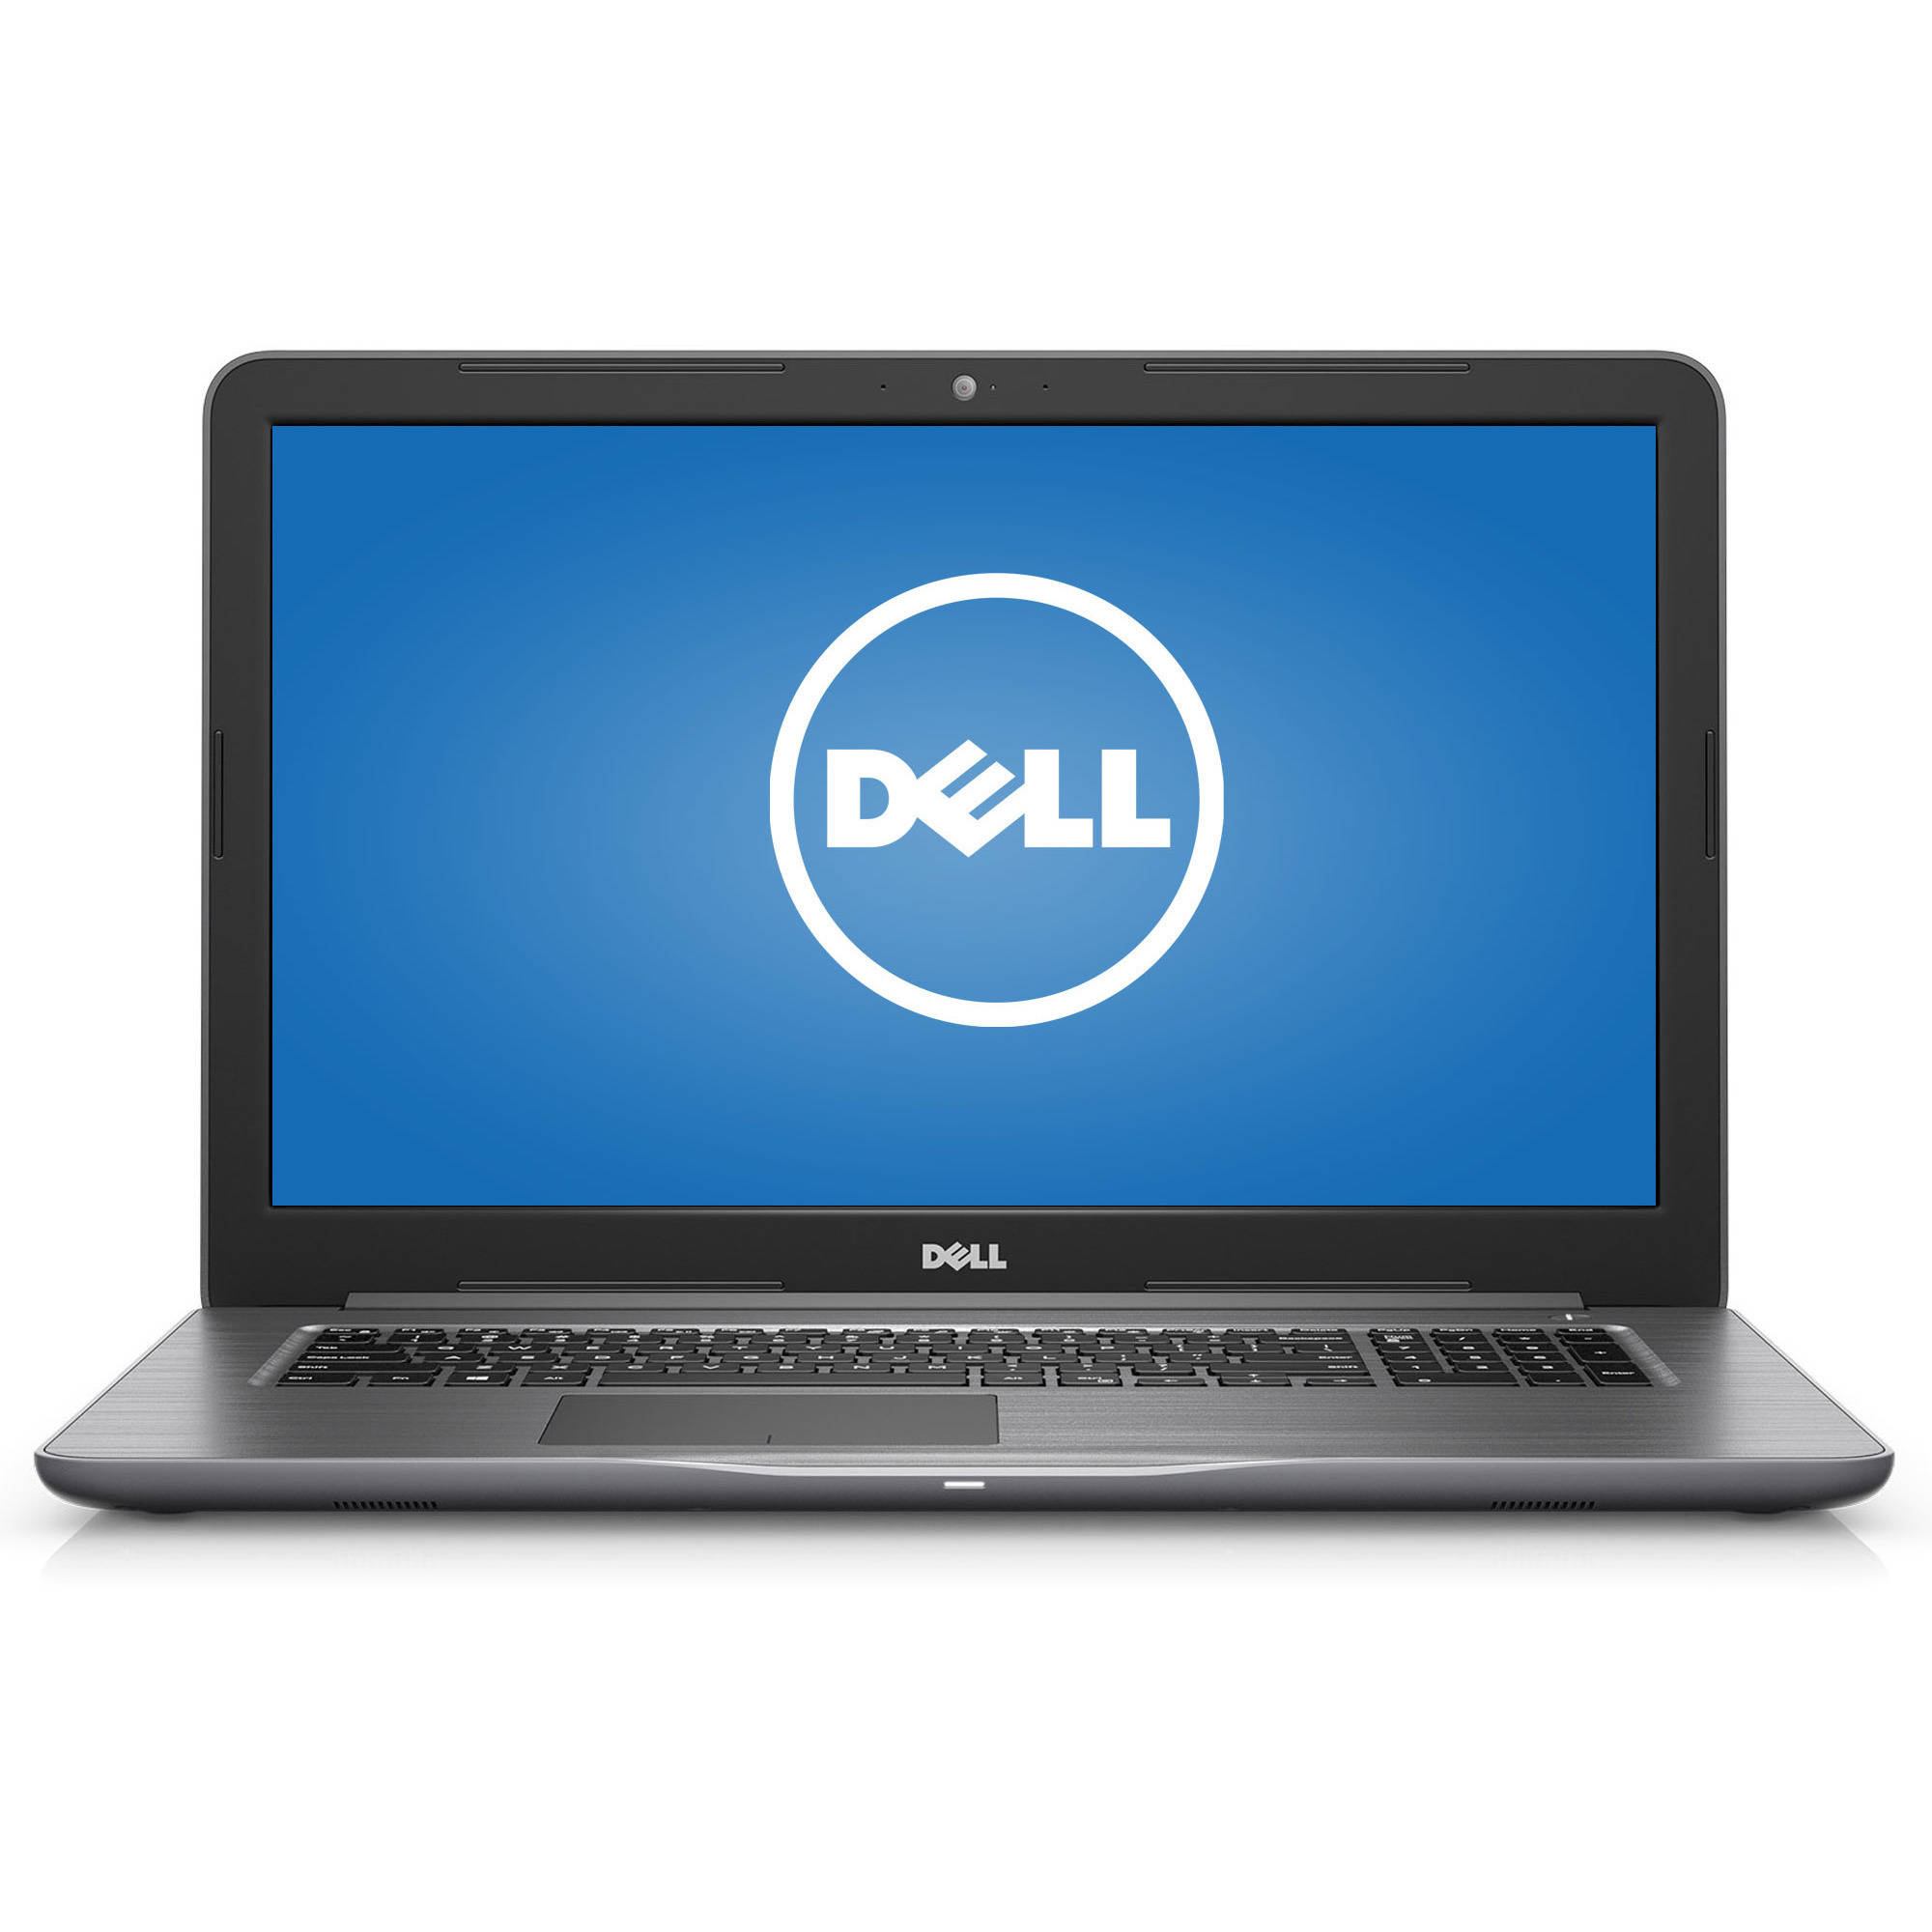 "Dell Inspiron 17 5000 i5767 17.3"" Laptop, Windows 10 Home, Intel Core i7-7500U Processor, 8GB RAM, 1TB Hard Drive"